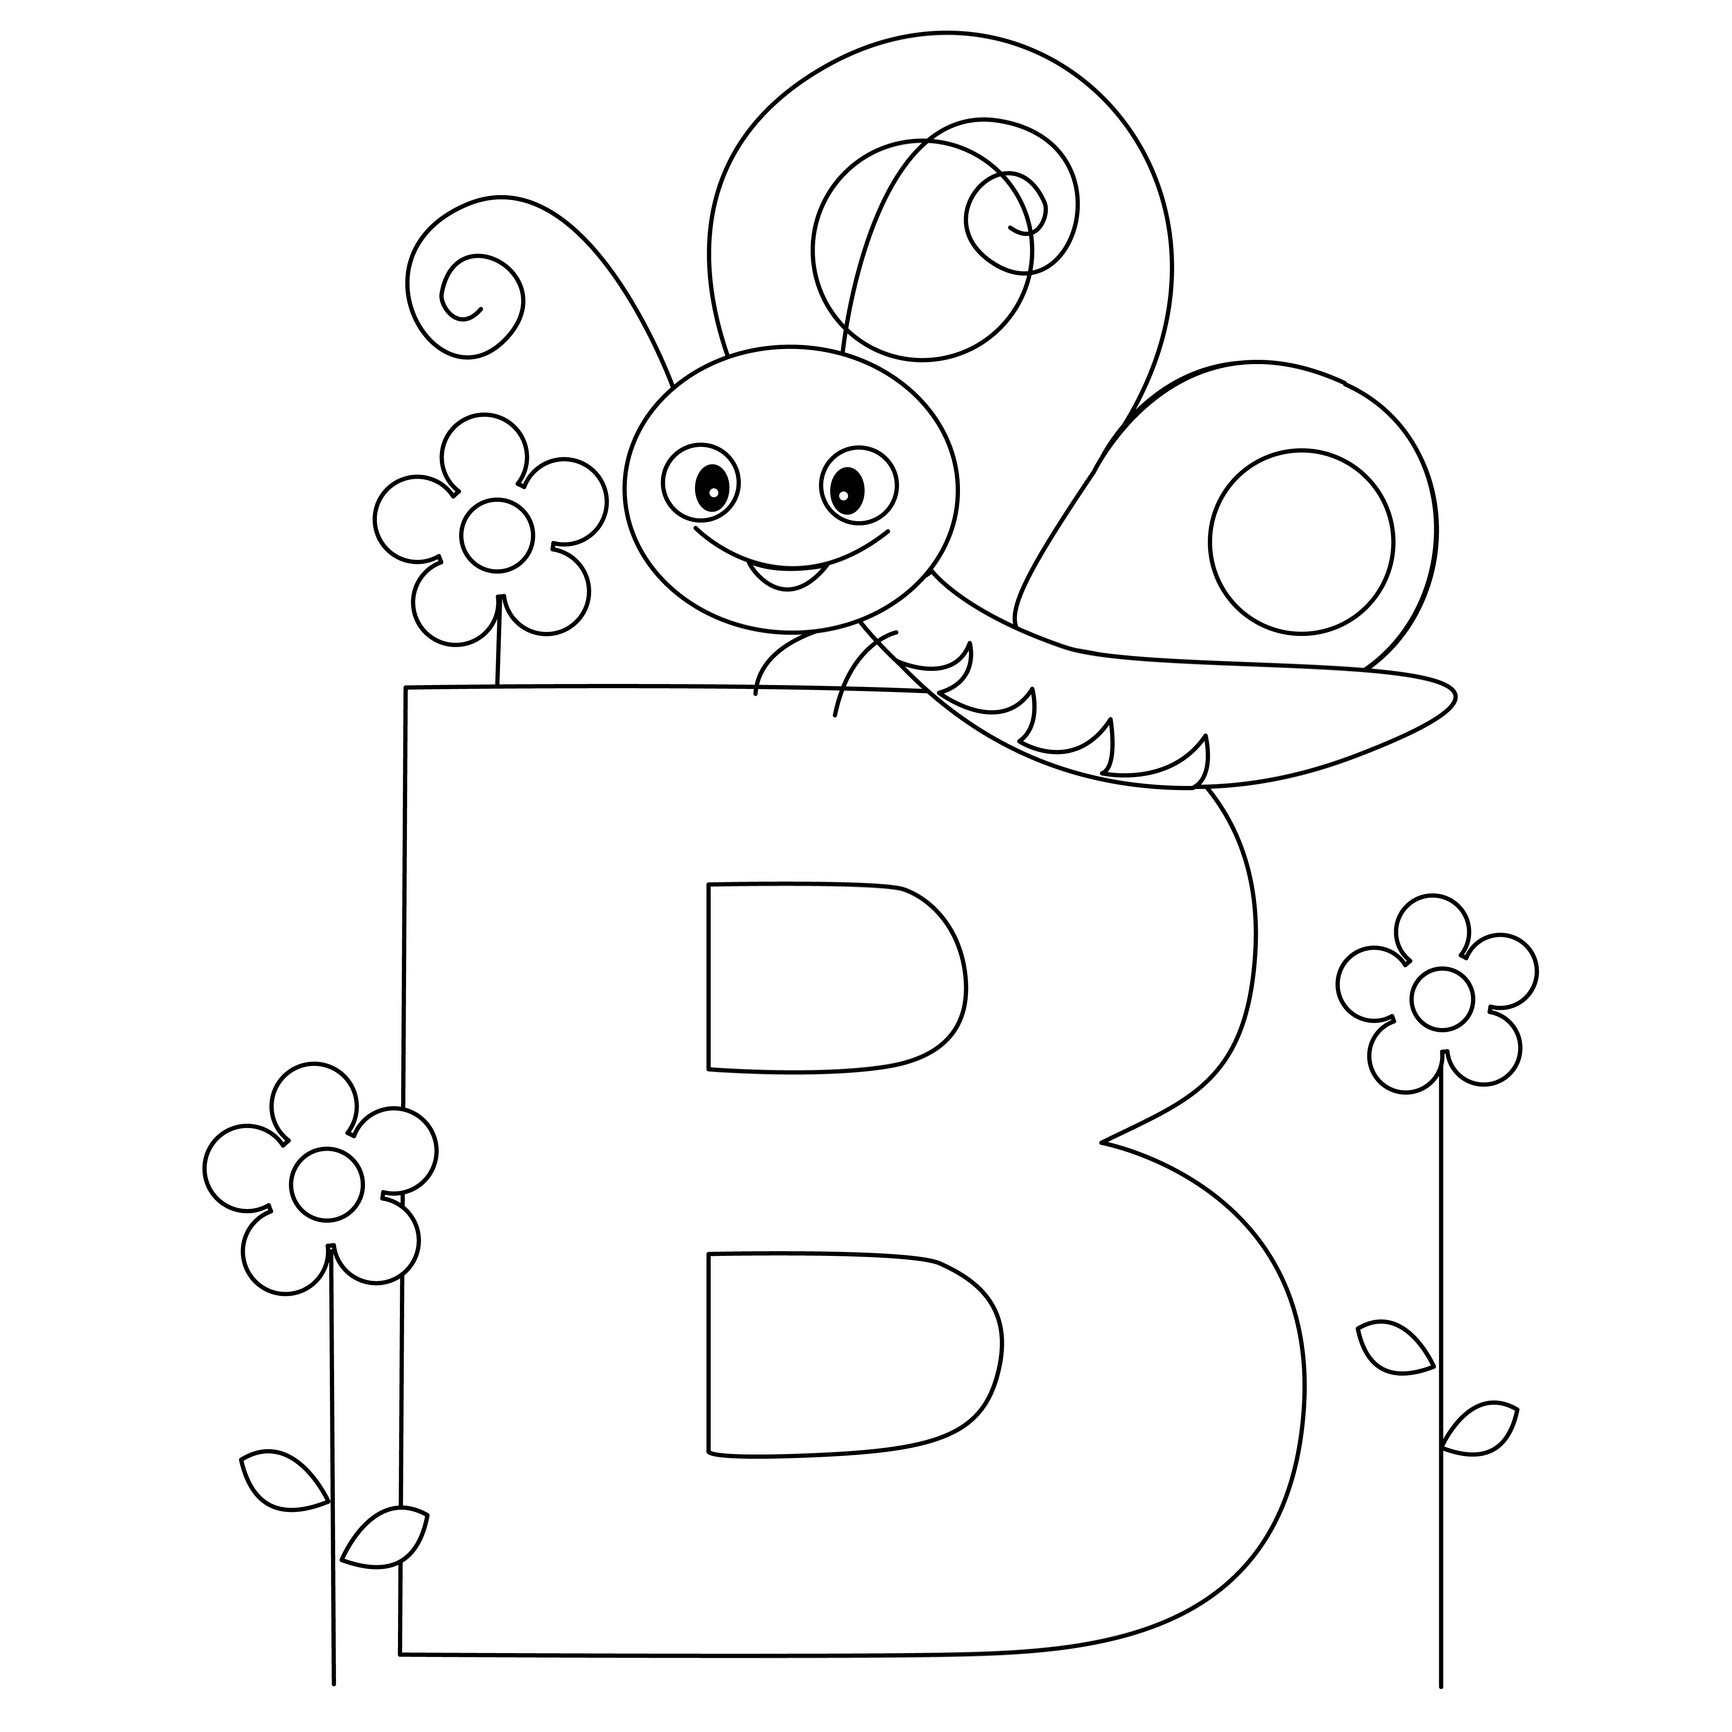 Coloring Pages : Free Printable Alphabet Coloring Pages For Kids - Free Printable Alphabet Letters Coloring Pages